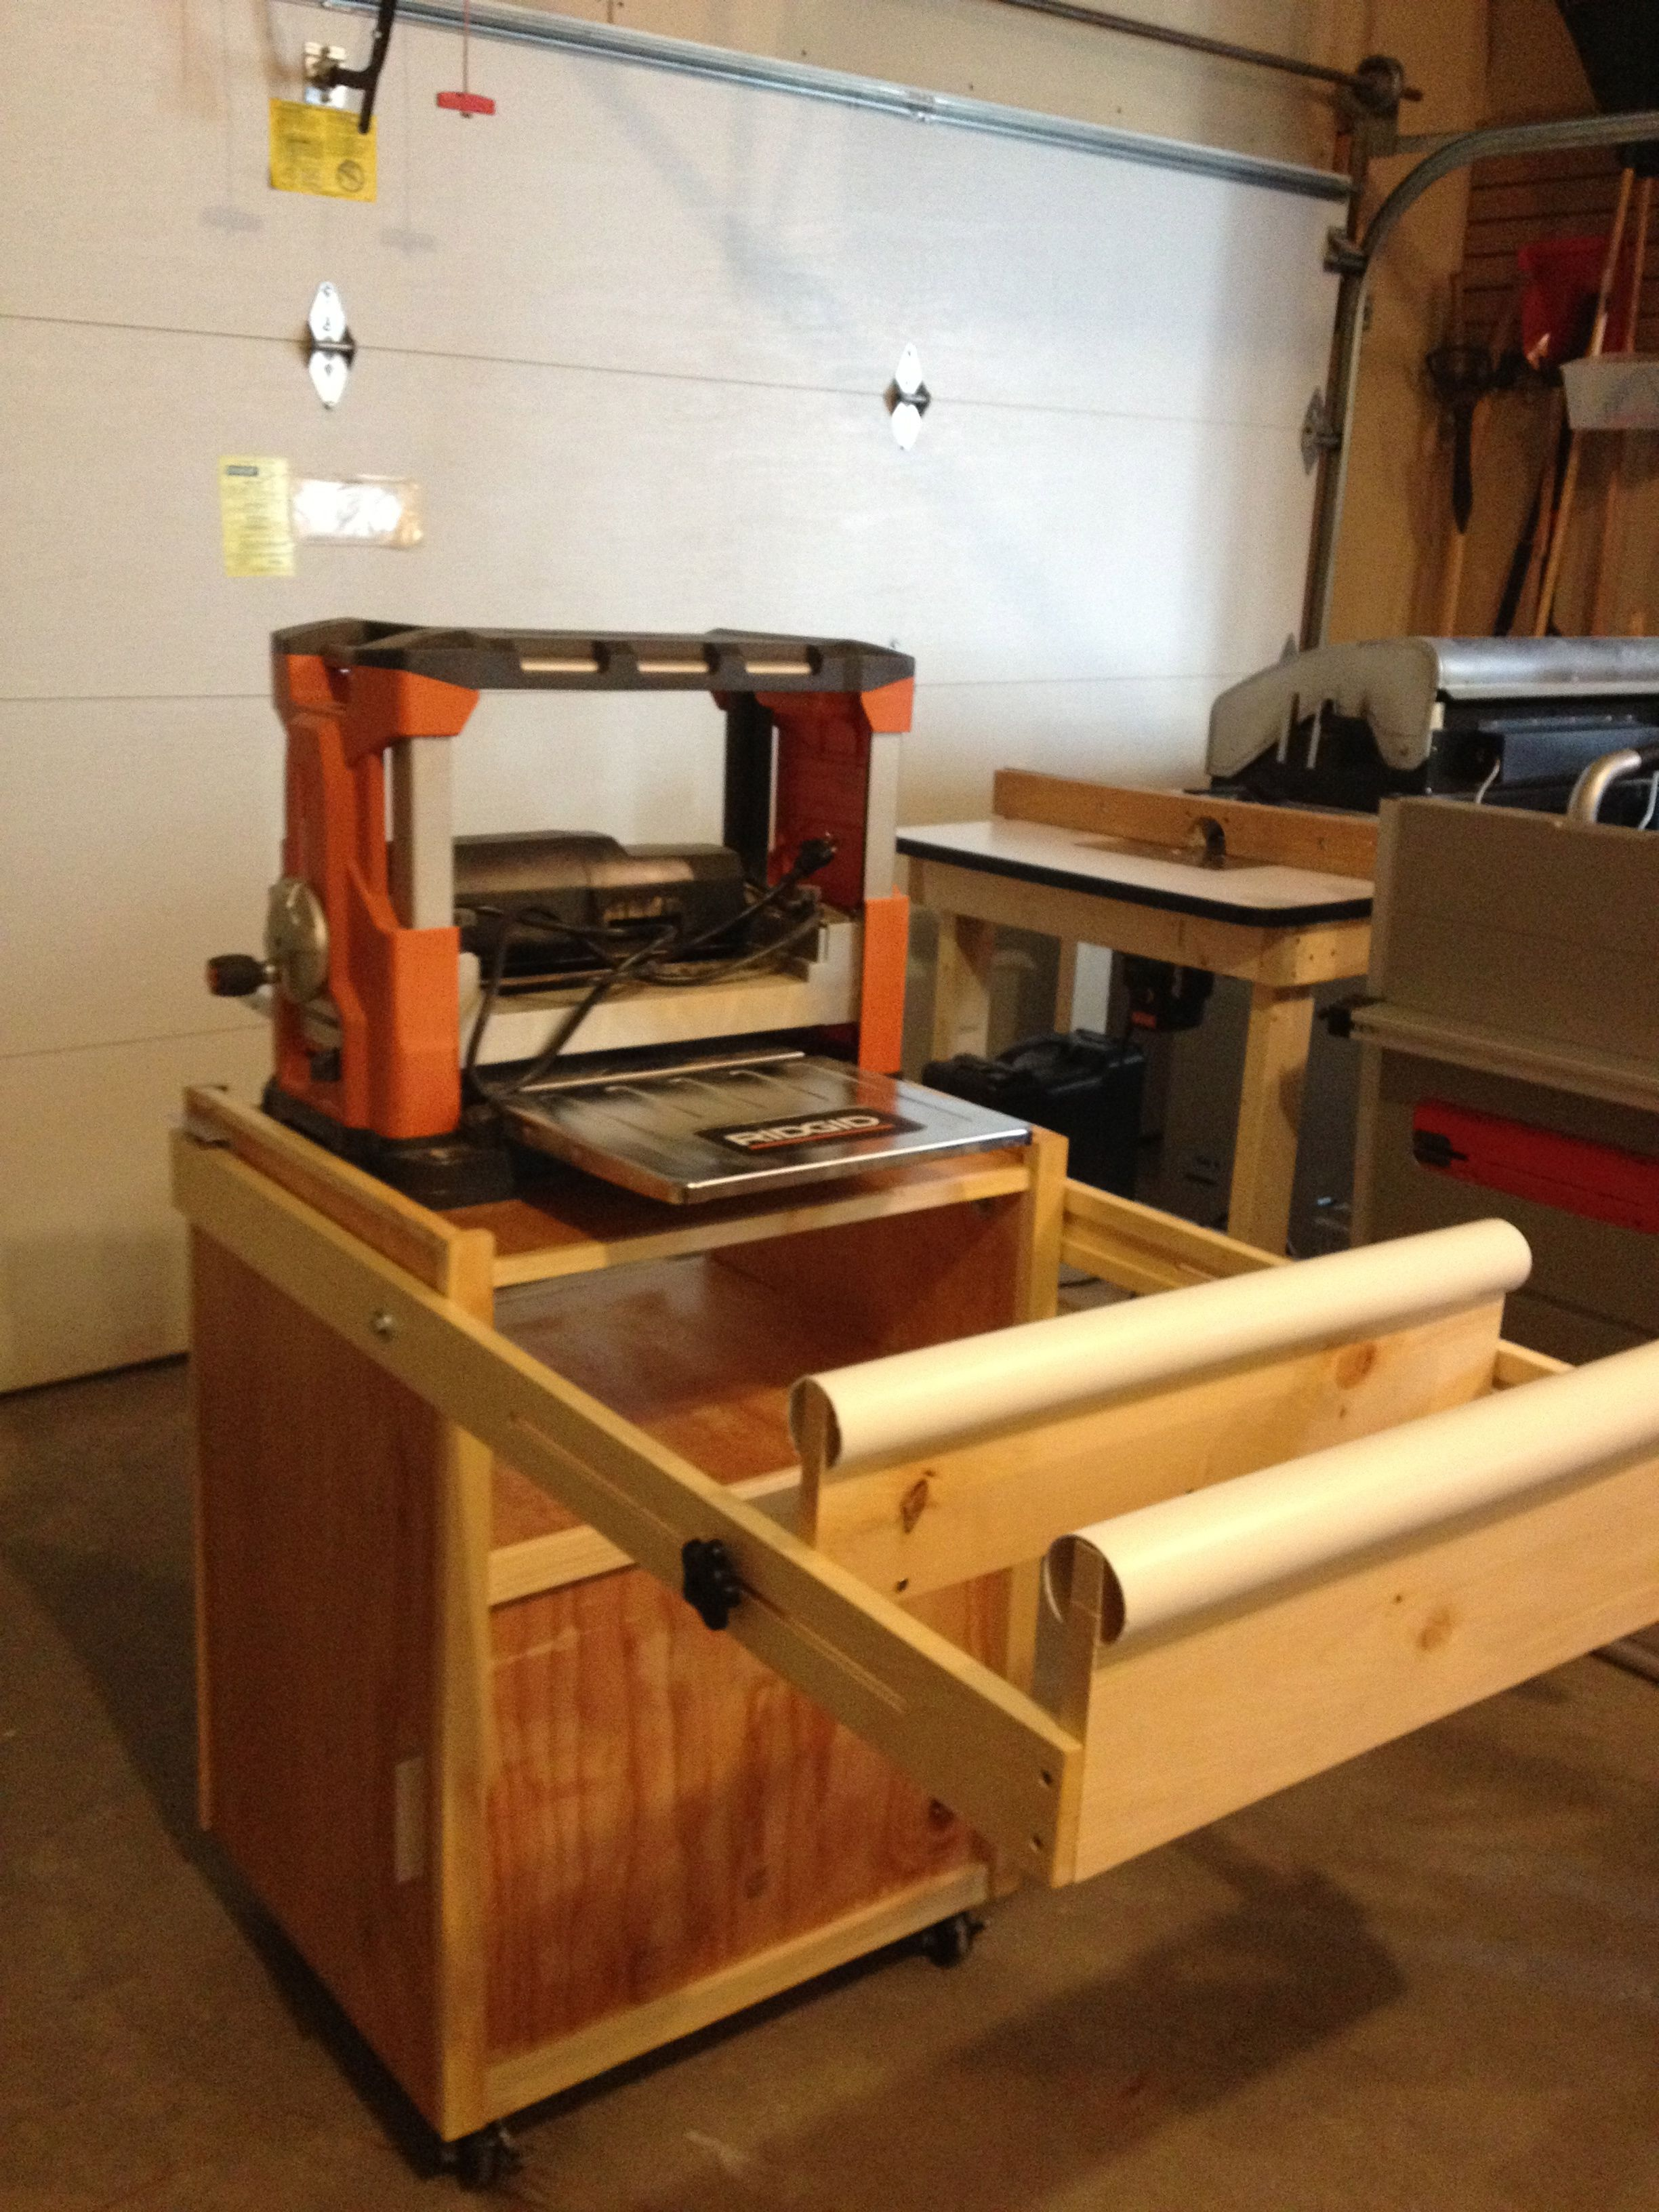 Woodworking Tool Bench Mobile Planer Cart With Drawer And Outfeed Arms